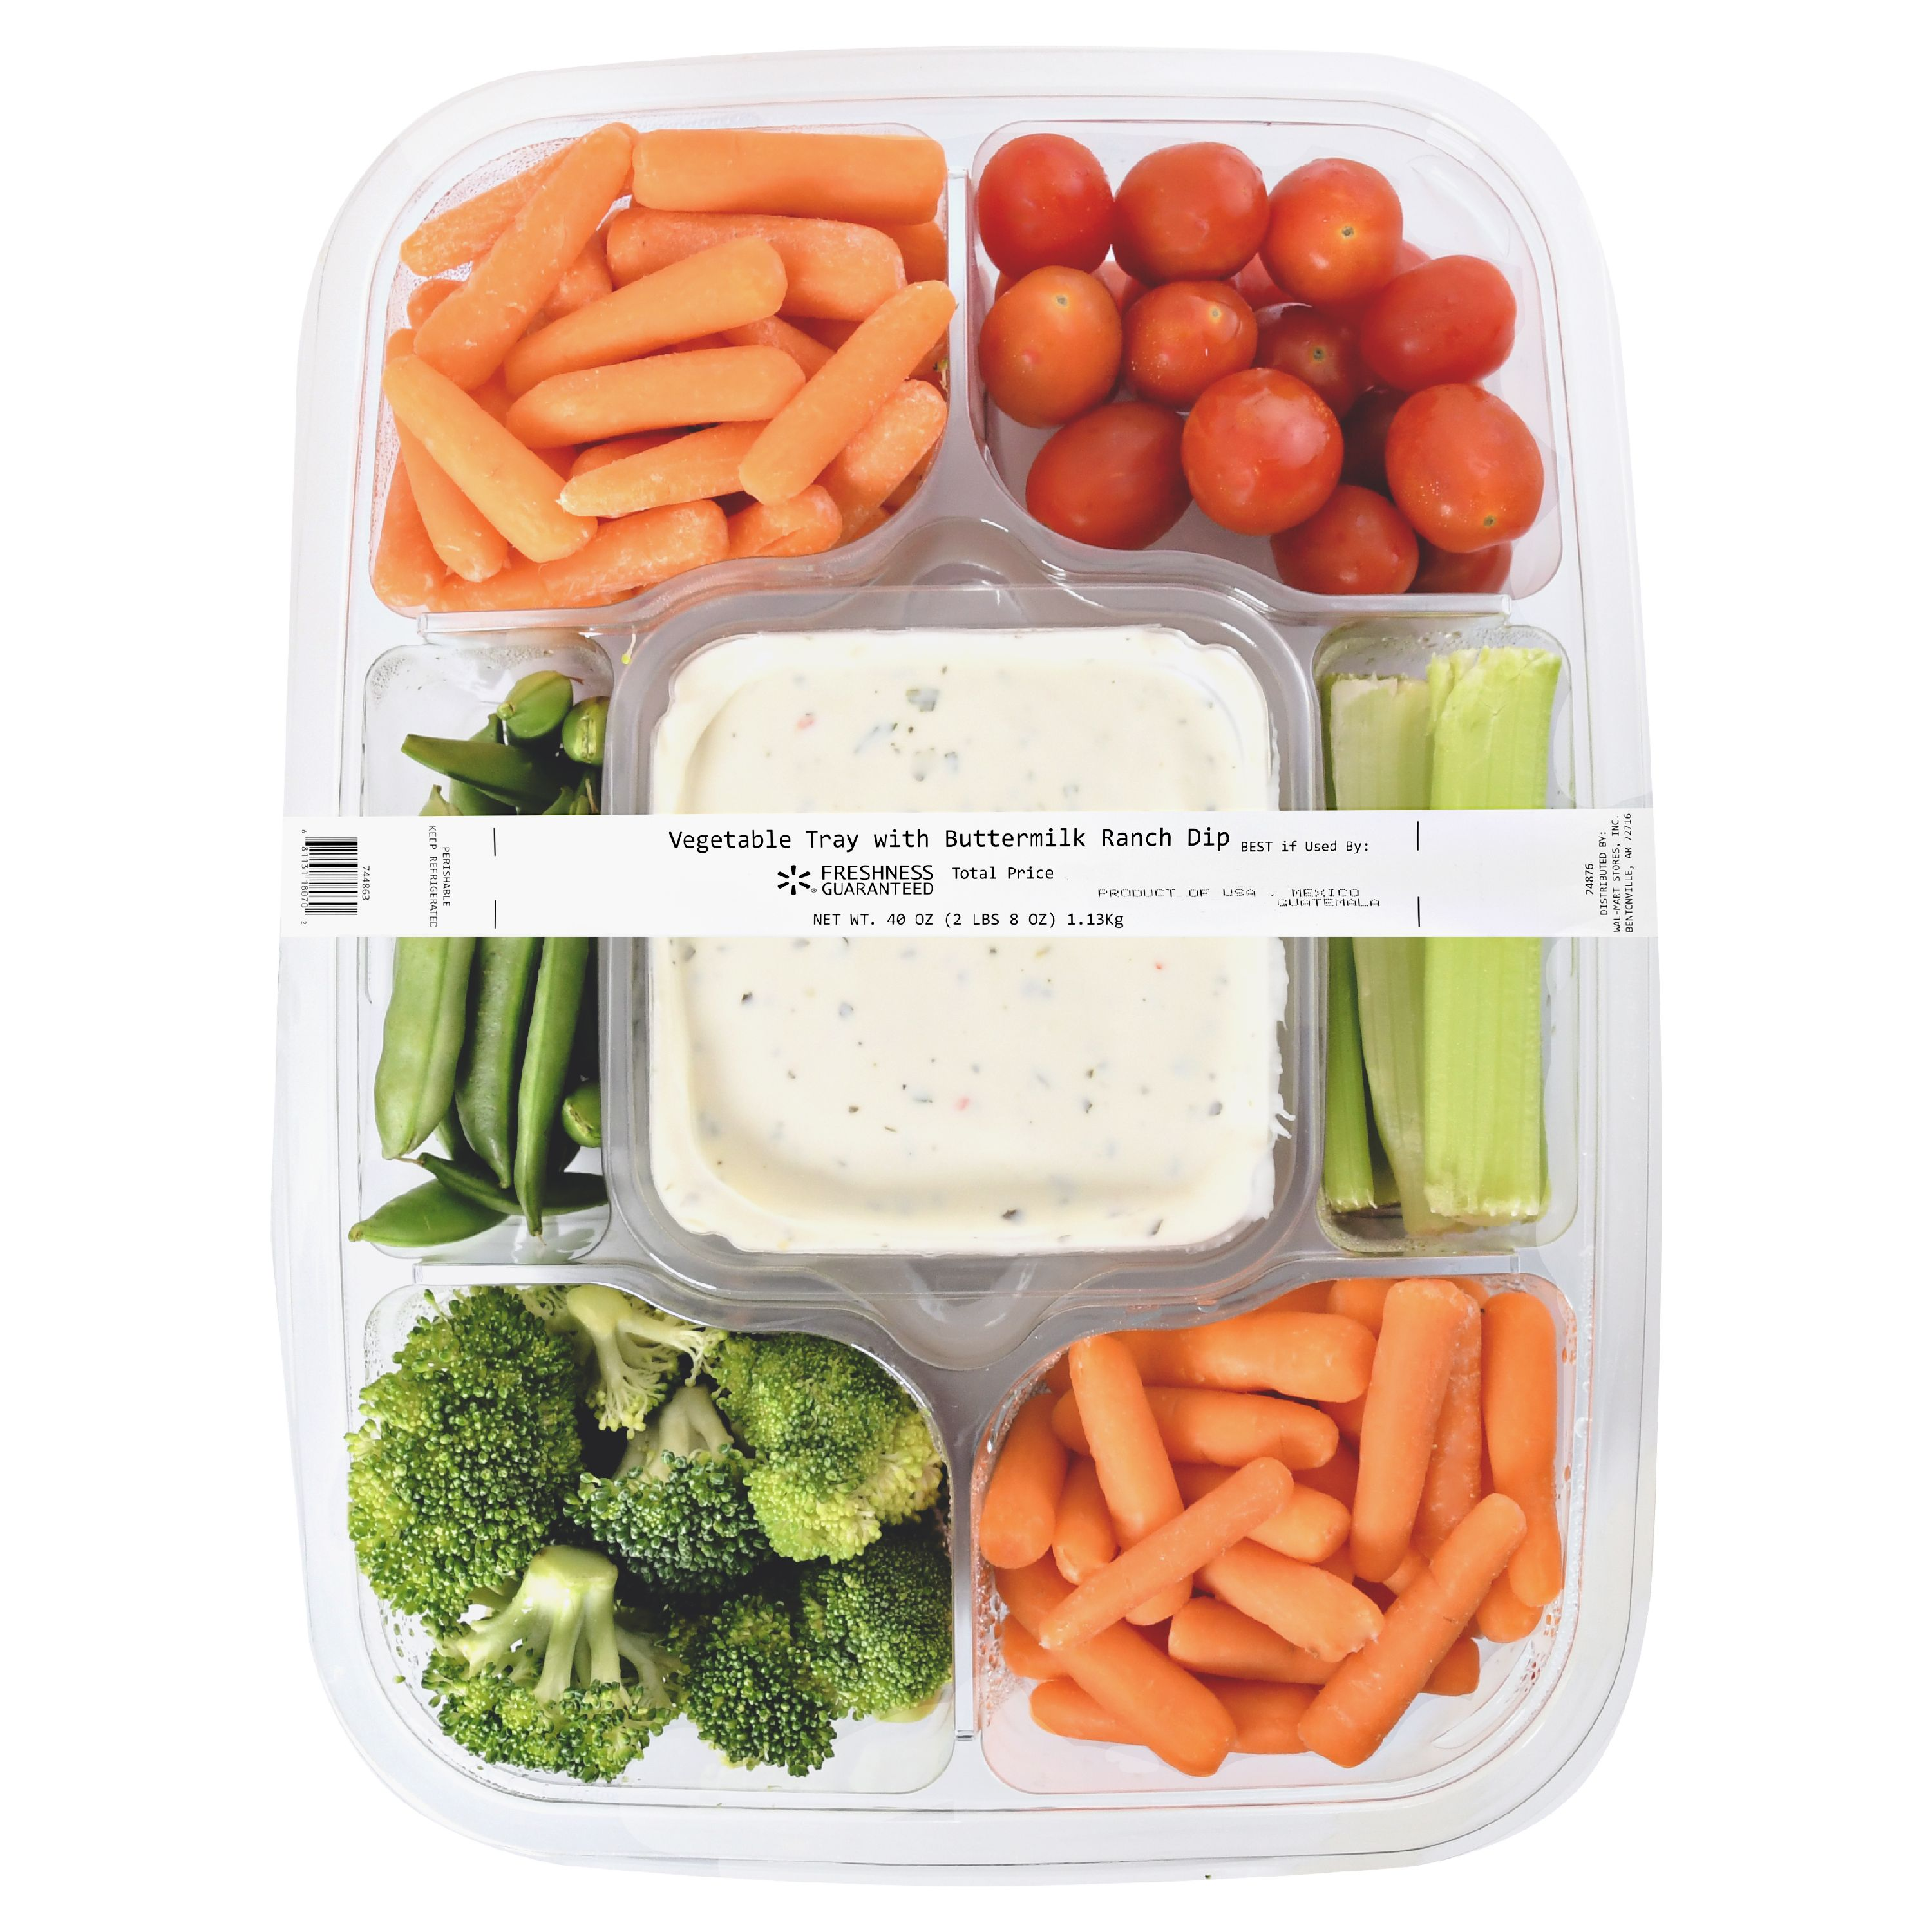 Vegetable Tray With Buttermilk Ranch Dip 40 Oz